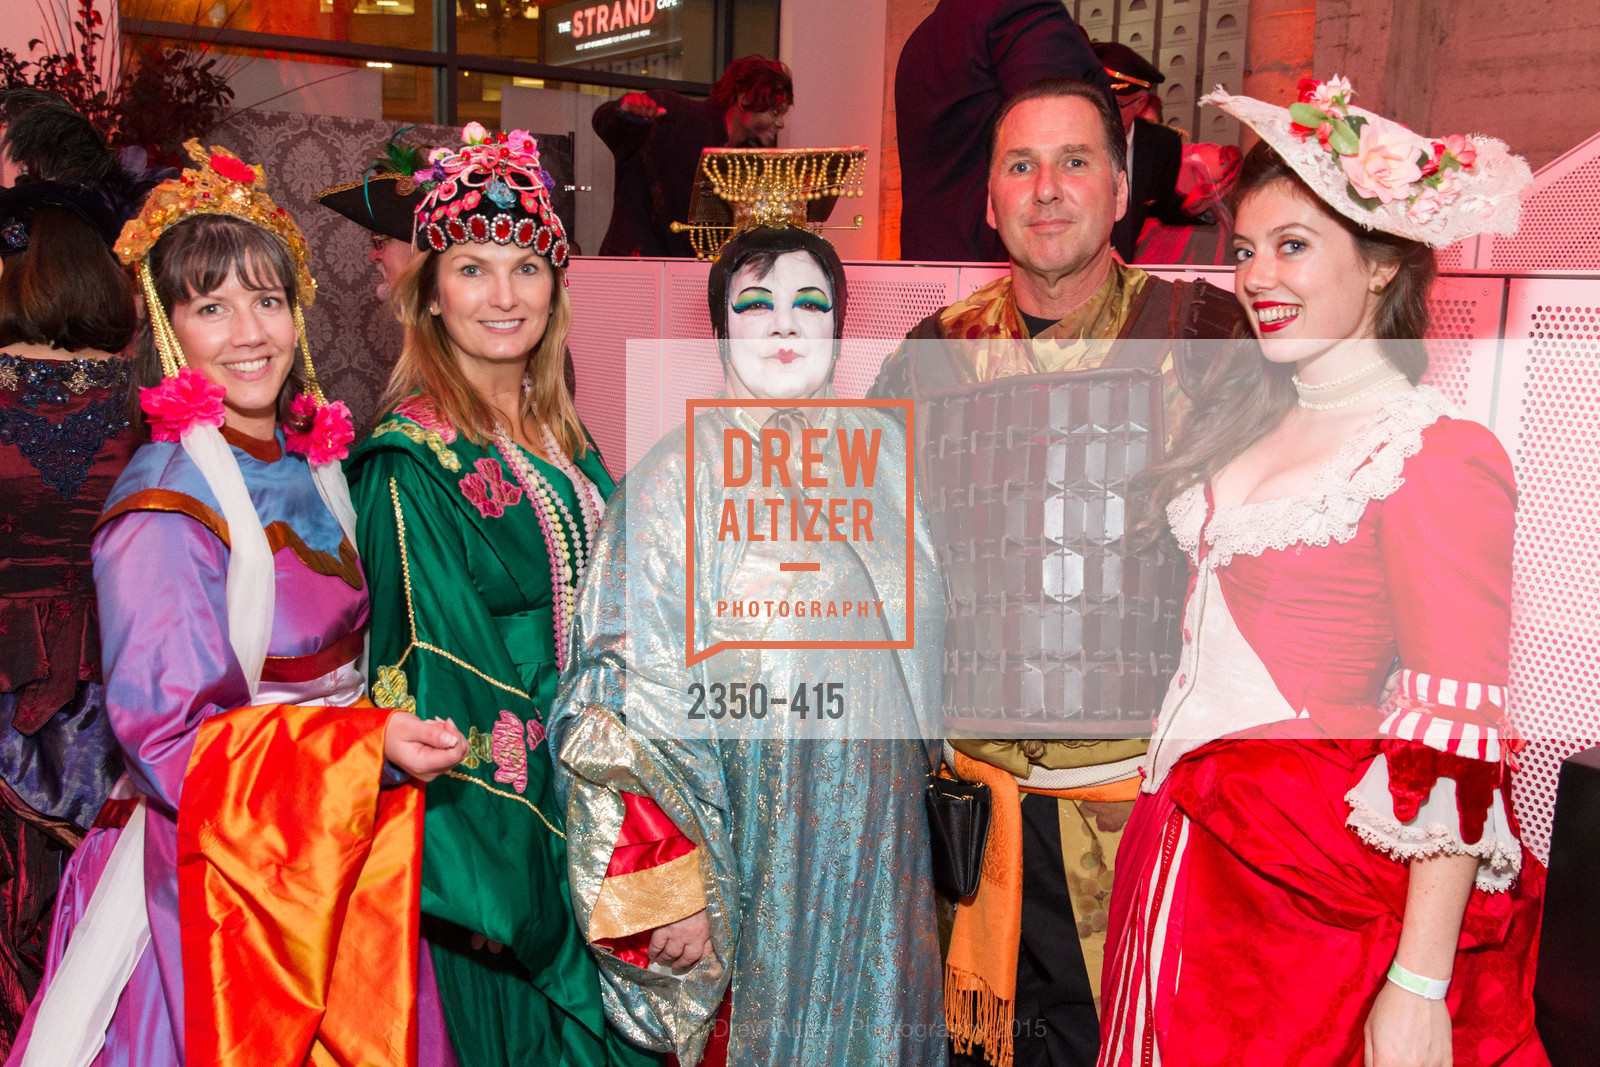 Michelle Shonk, Peralynn Schlater, Jay Streets, Anne Shonk, SPOOKED AT THE STRAND Presented by the American Conservatory Theater, The Strand Theater. 1127 Market Street, October 26th, 2015,Drew Altizer, Drew Altizer Photography, full-service event agency, private events, San Francisco photographer, photographer California